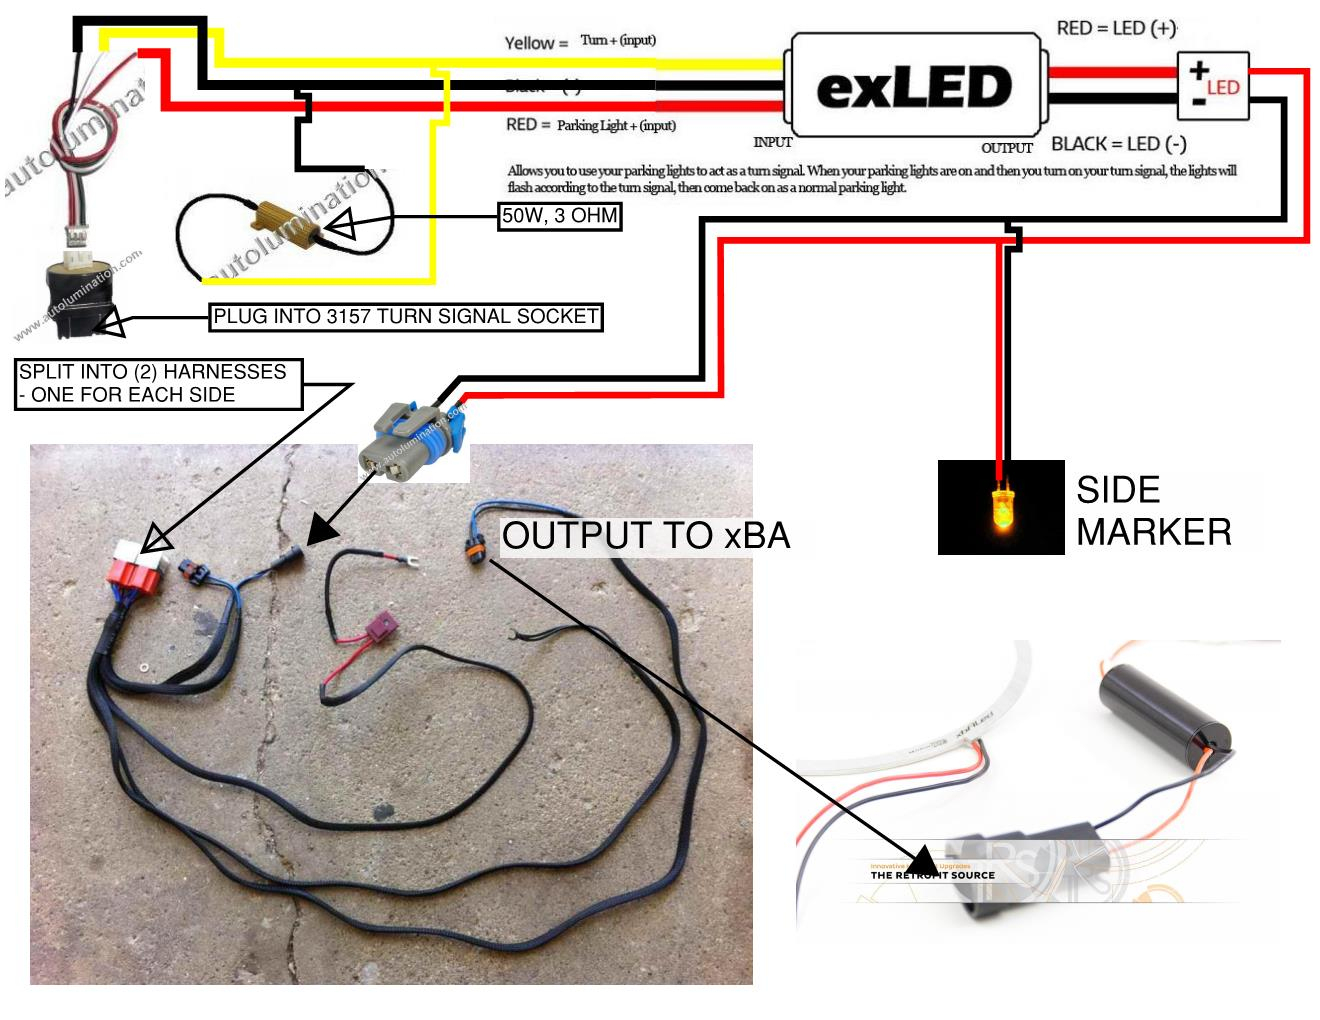 Led Turn Signal Lights Wiring Diagram | Wiring Diagram - 3 Wire Led Trailer Light Wiring Diagram